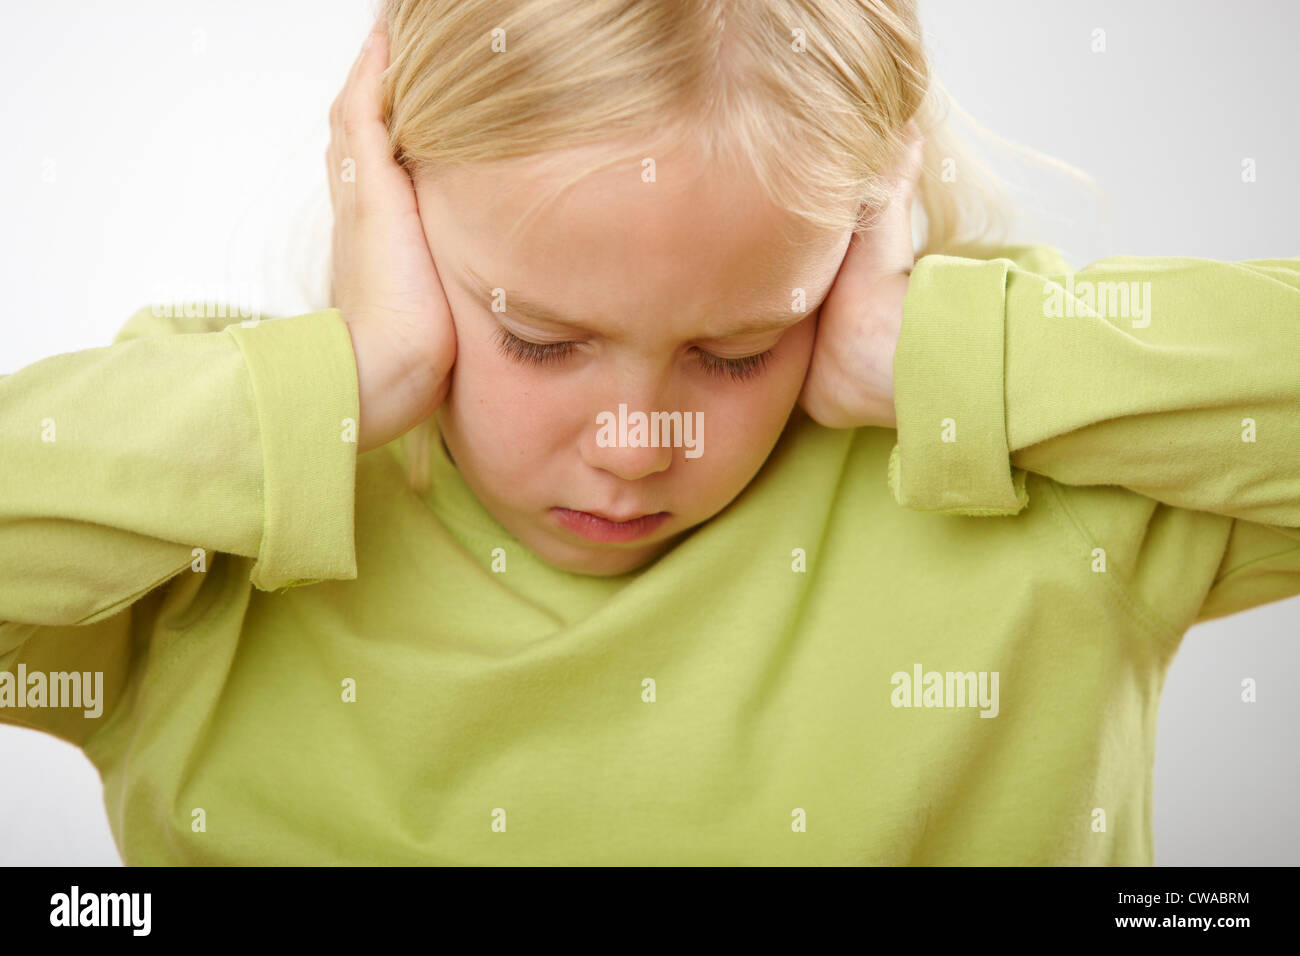 Girl with hands over ears - Stock Image